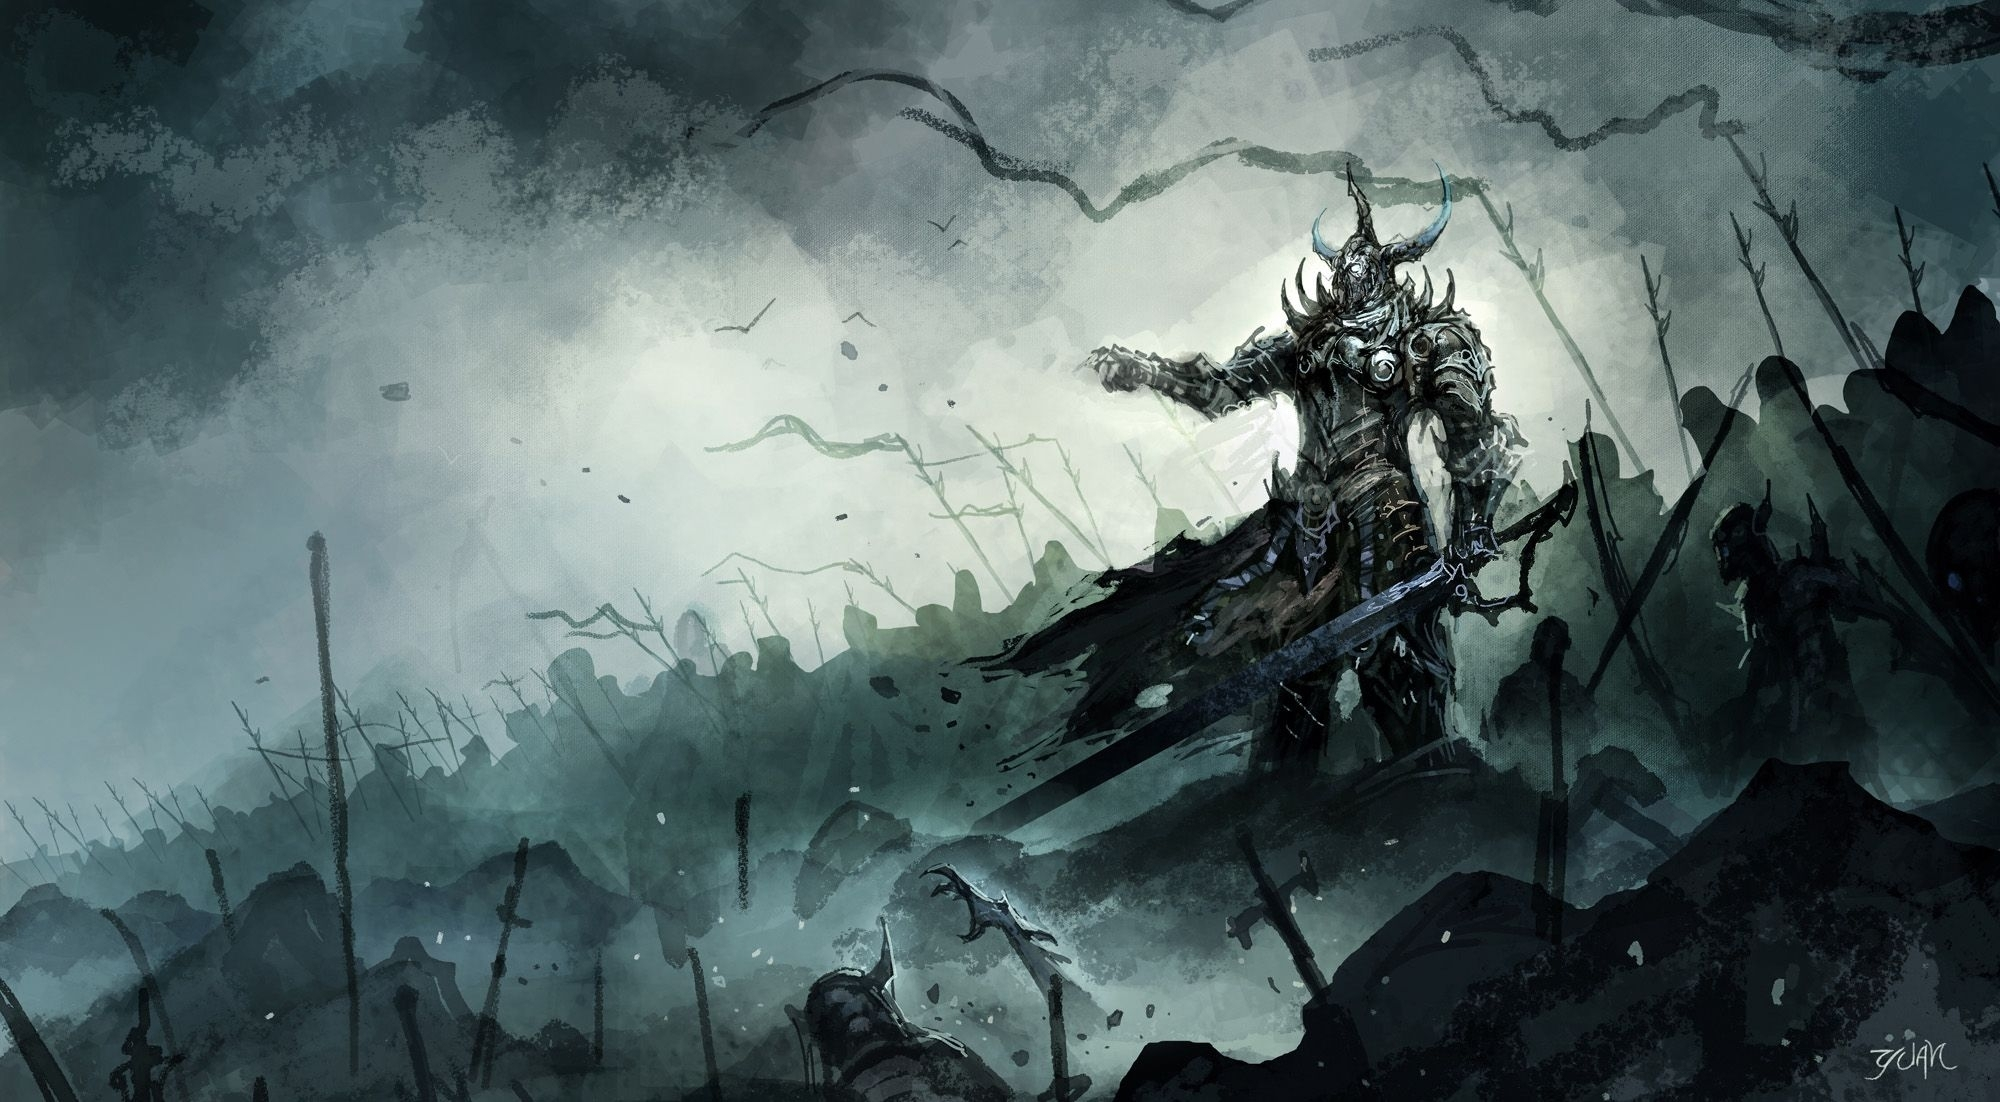 epic fantasy wallpapers dark hd free download > subwallpaper